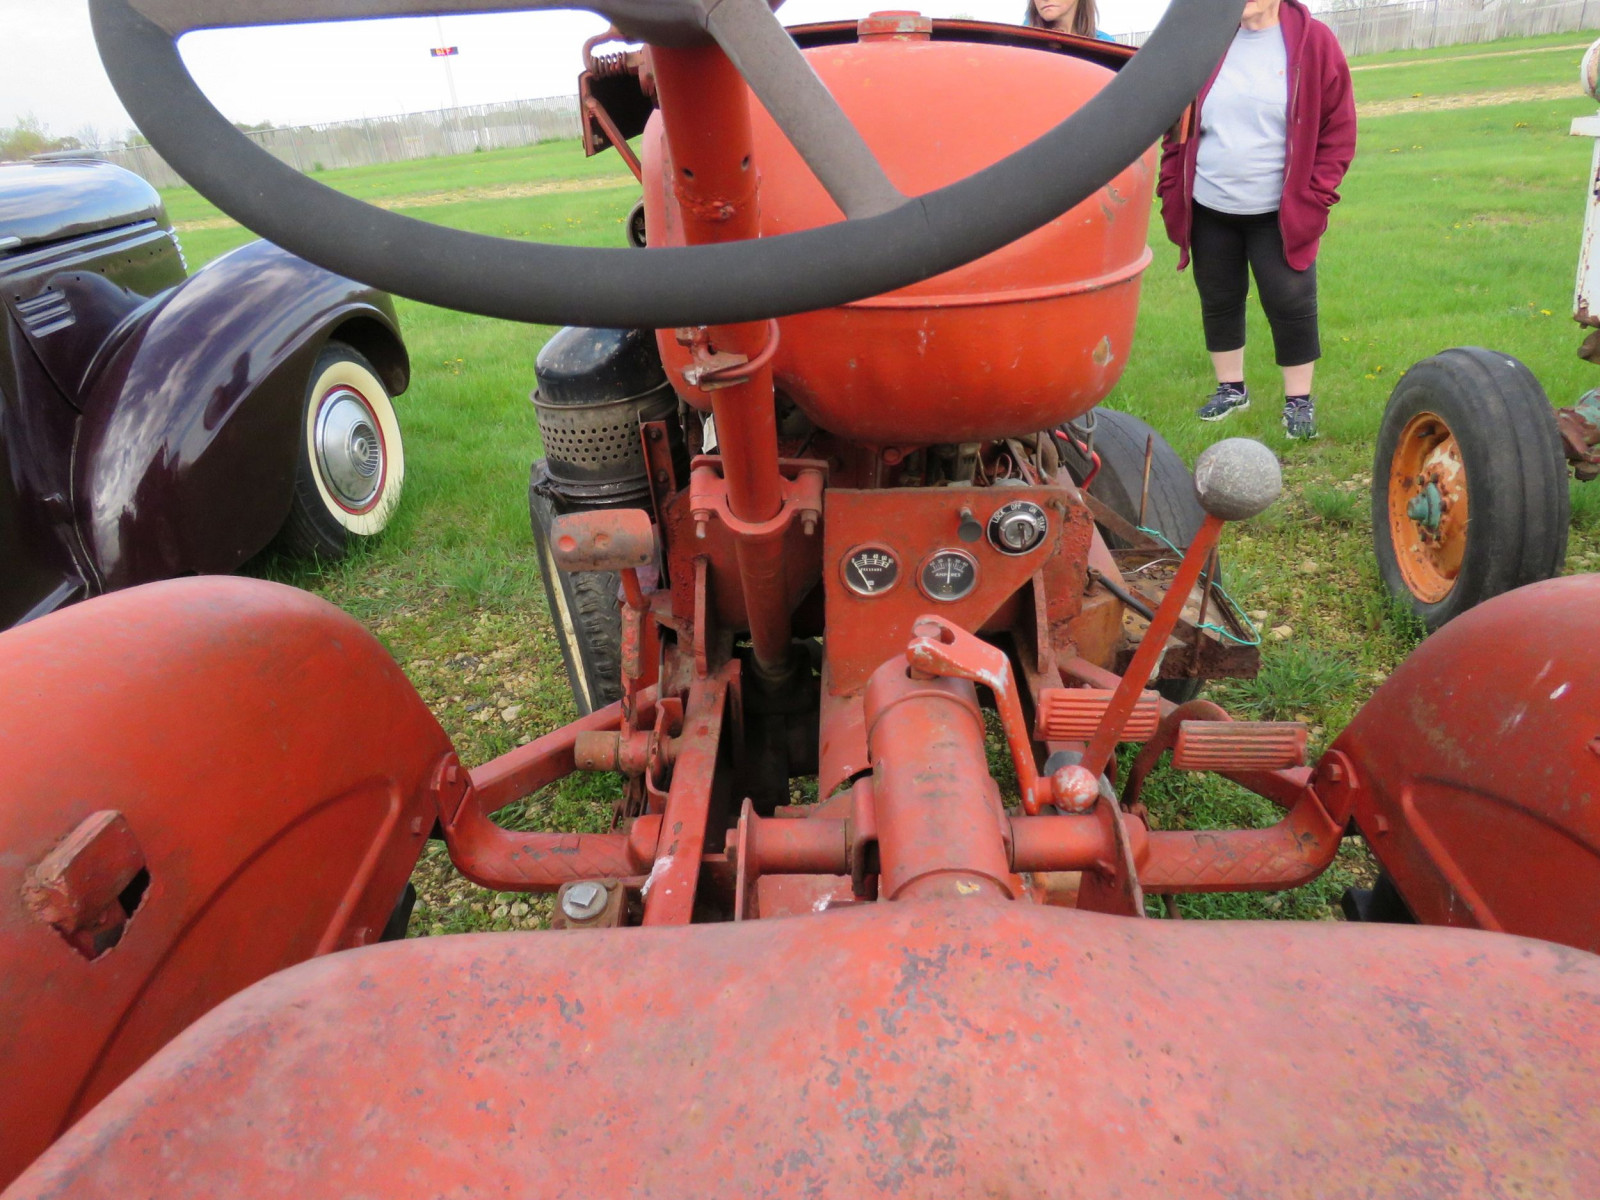 Homemade tractor - Image 6